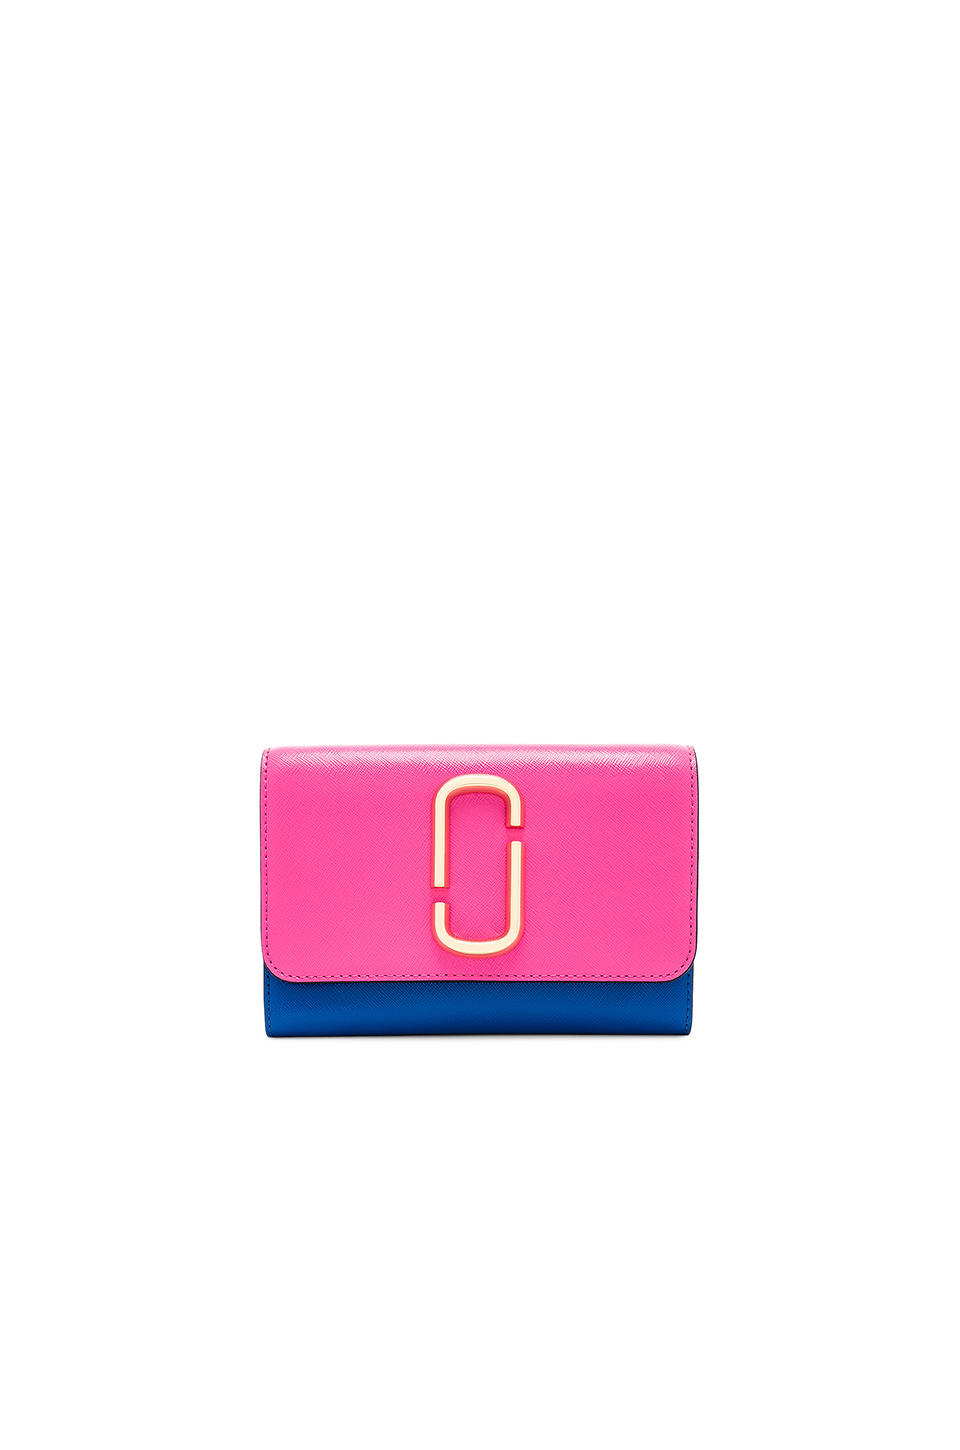 1543dc934c43c Buy Original Marc Jacobs Wallet On Chain Bag at Indonesia